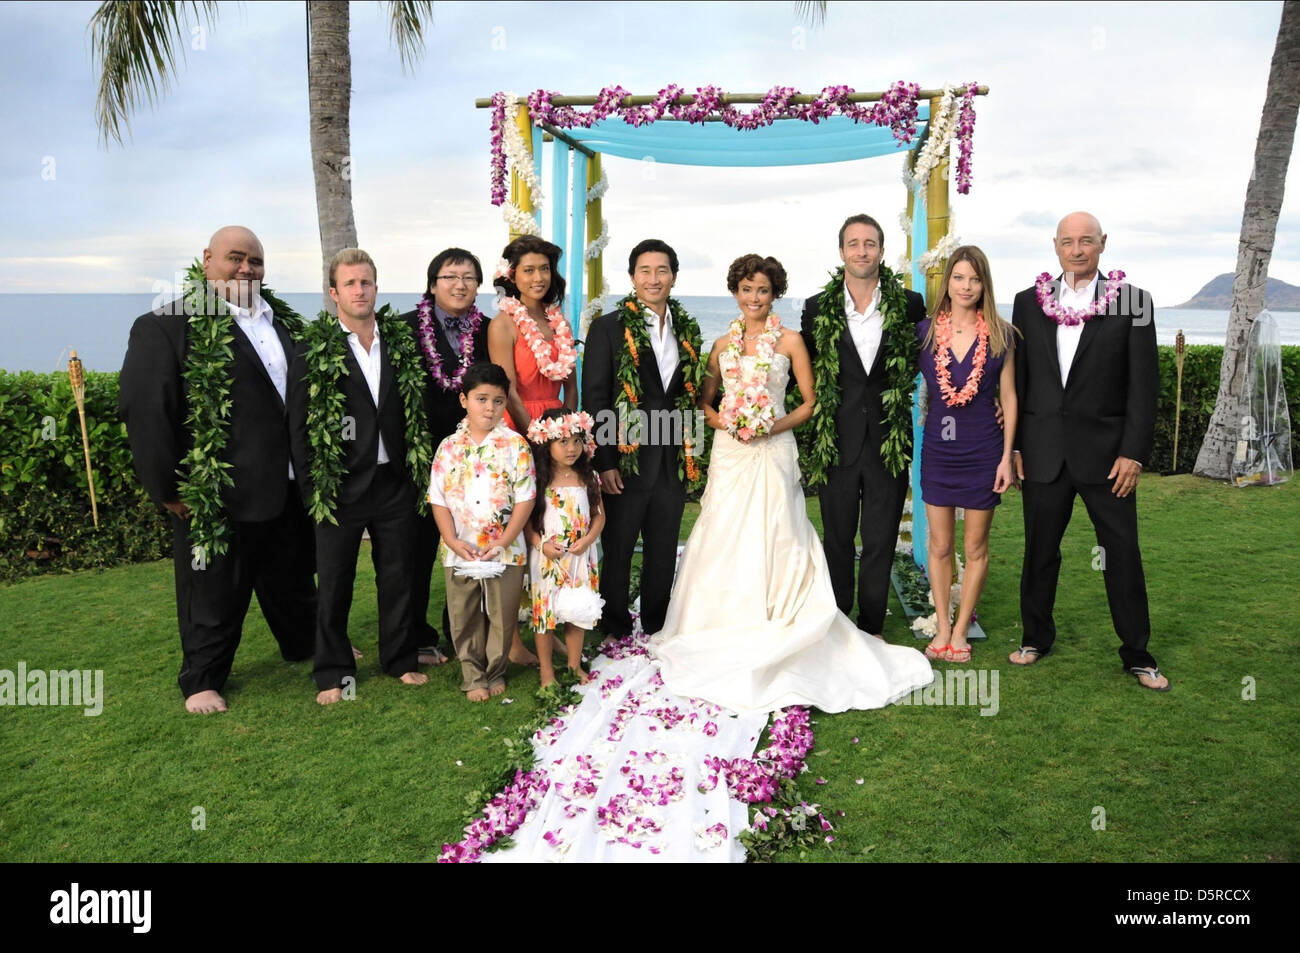 TAYLOR WILY SCOTT CAAN MASI OKA GRACE PARK DANIEL DAE KIM REIKO AYLESWORTH ALEX O'LOUGHLIN LAUREN GERMAN & - Stock Image